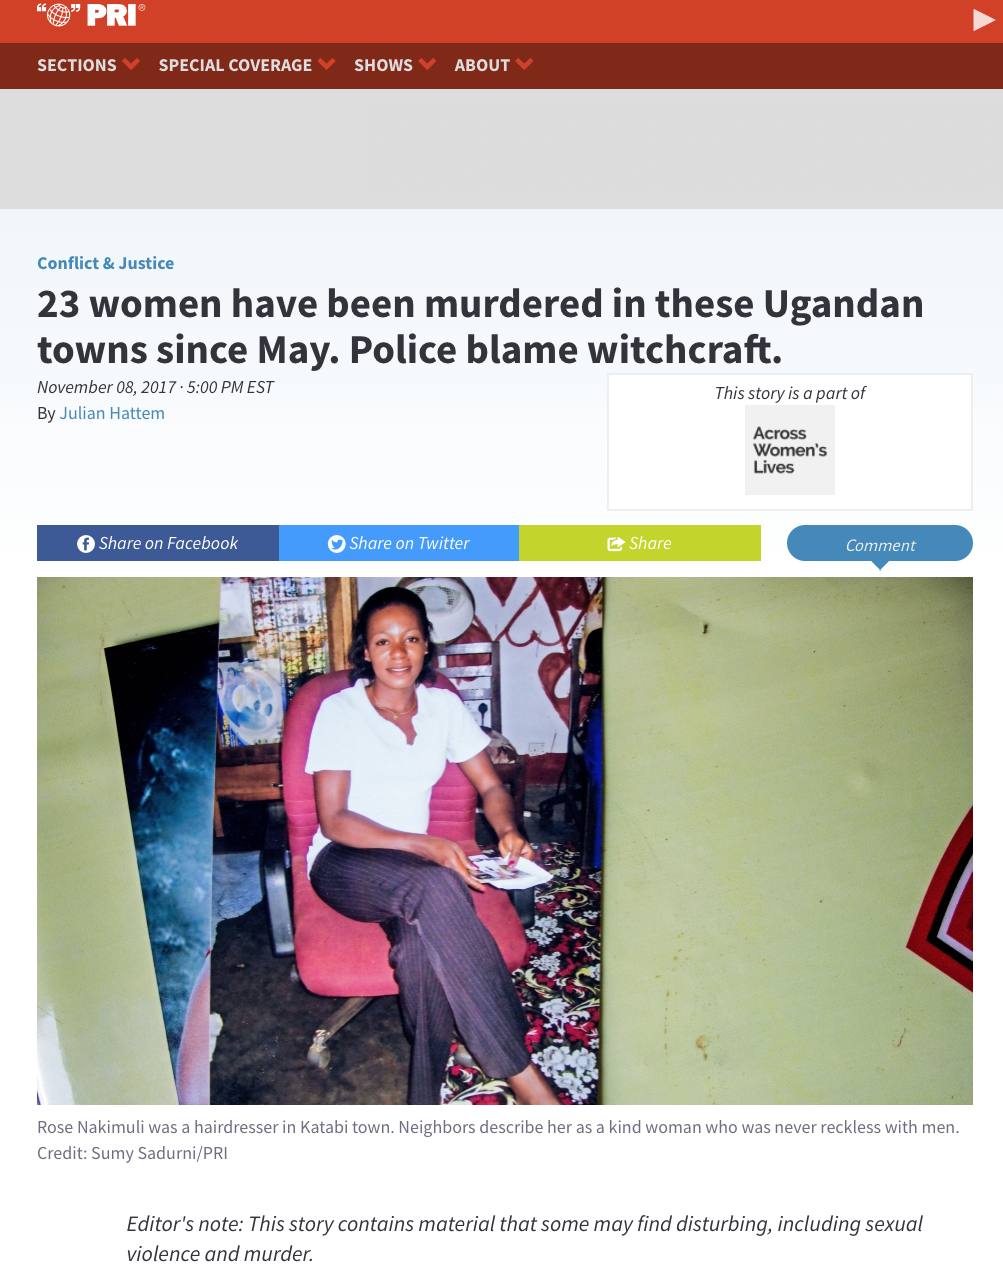 23 women have been murdered in these Ugandan towns since May // Public Radio International 11.2017